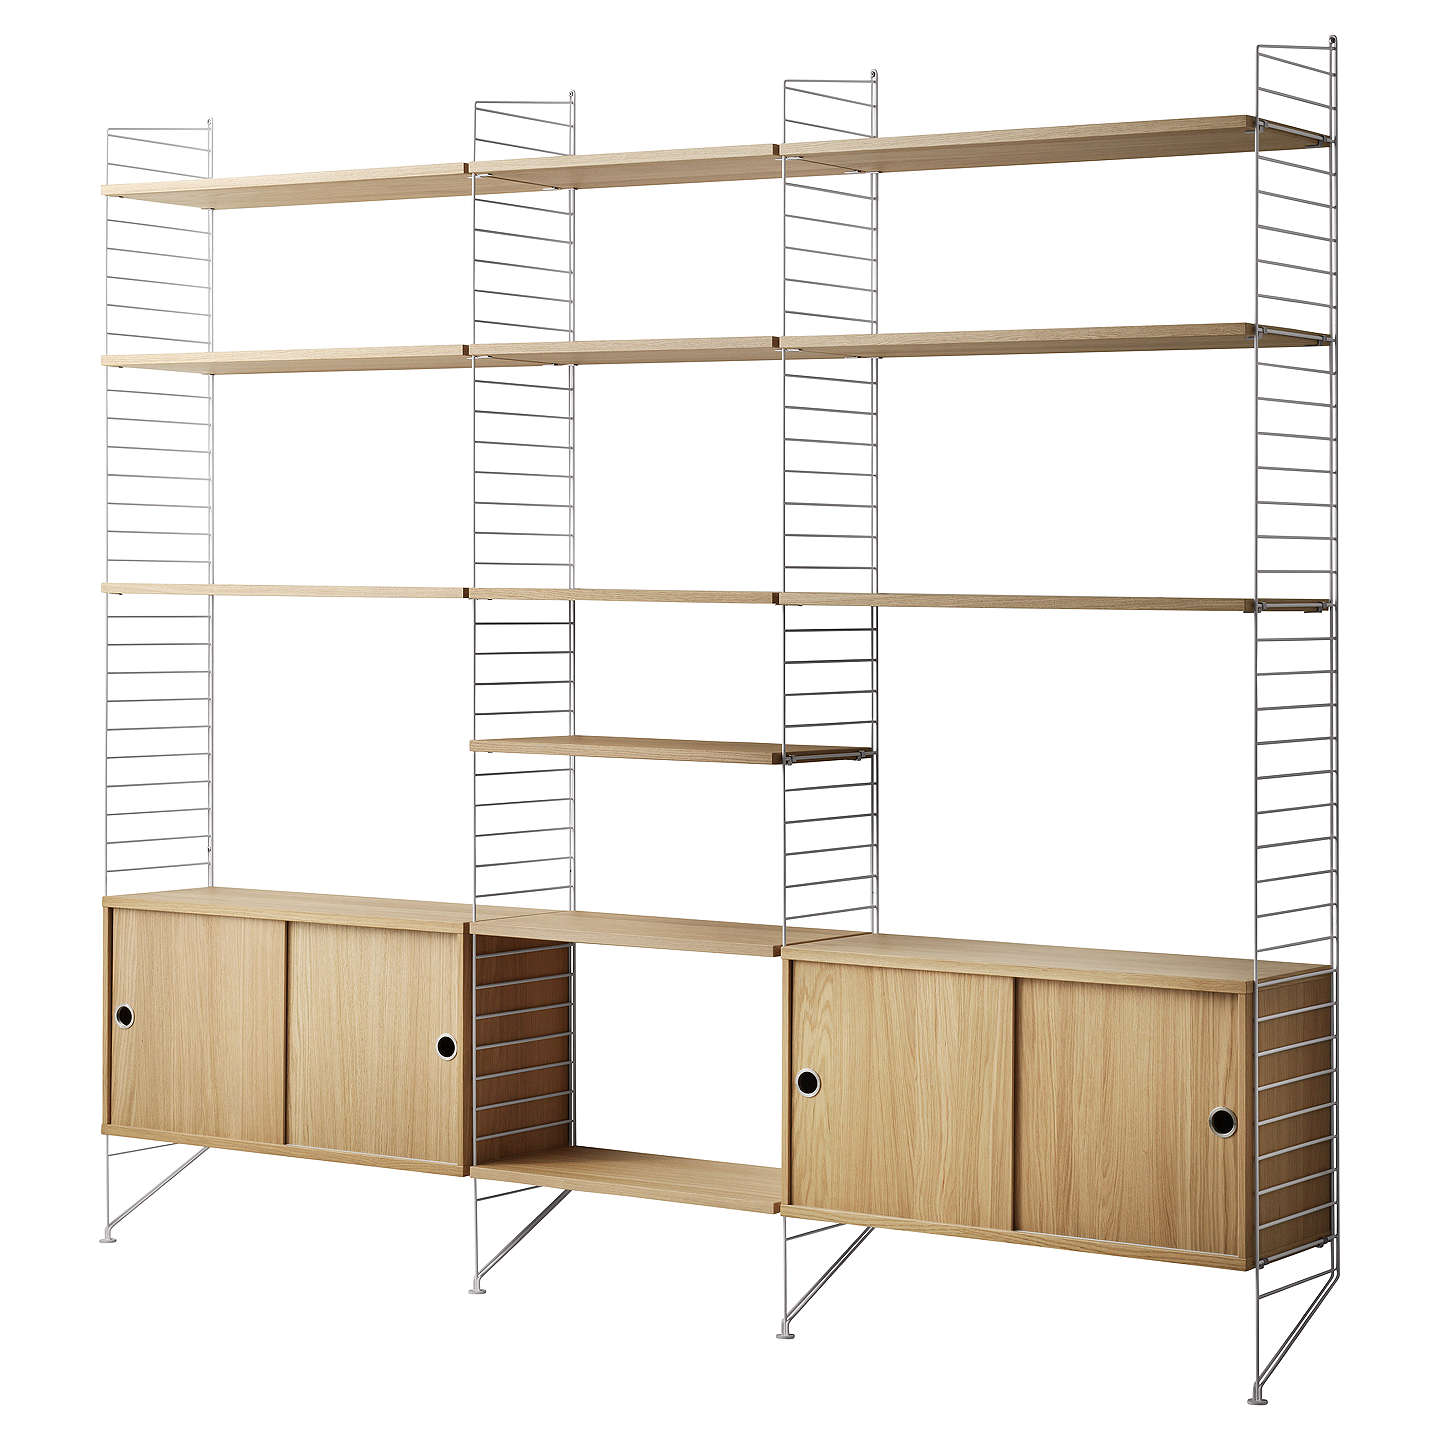 w canada x en organization kitchen inch h p home shelf cabinet and the d categories storage depot